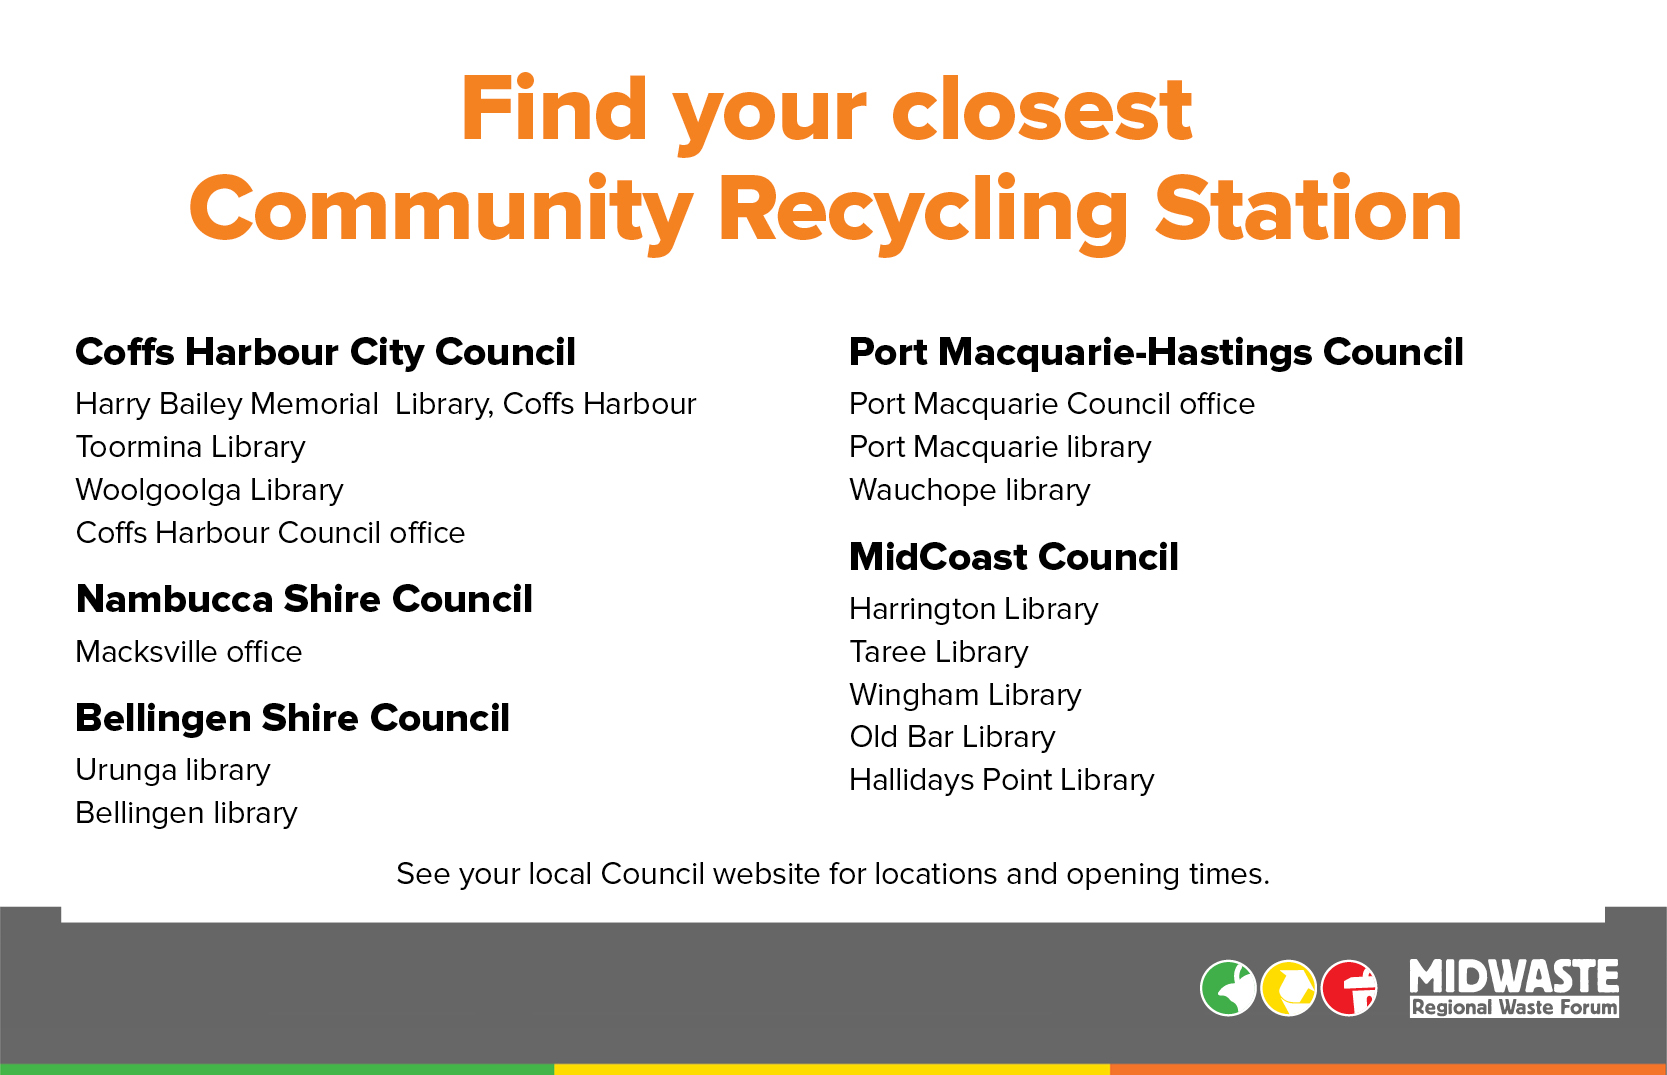 Community Recycling Stations